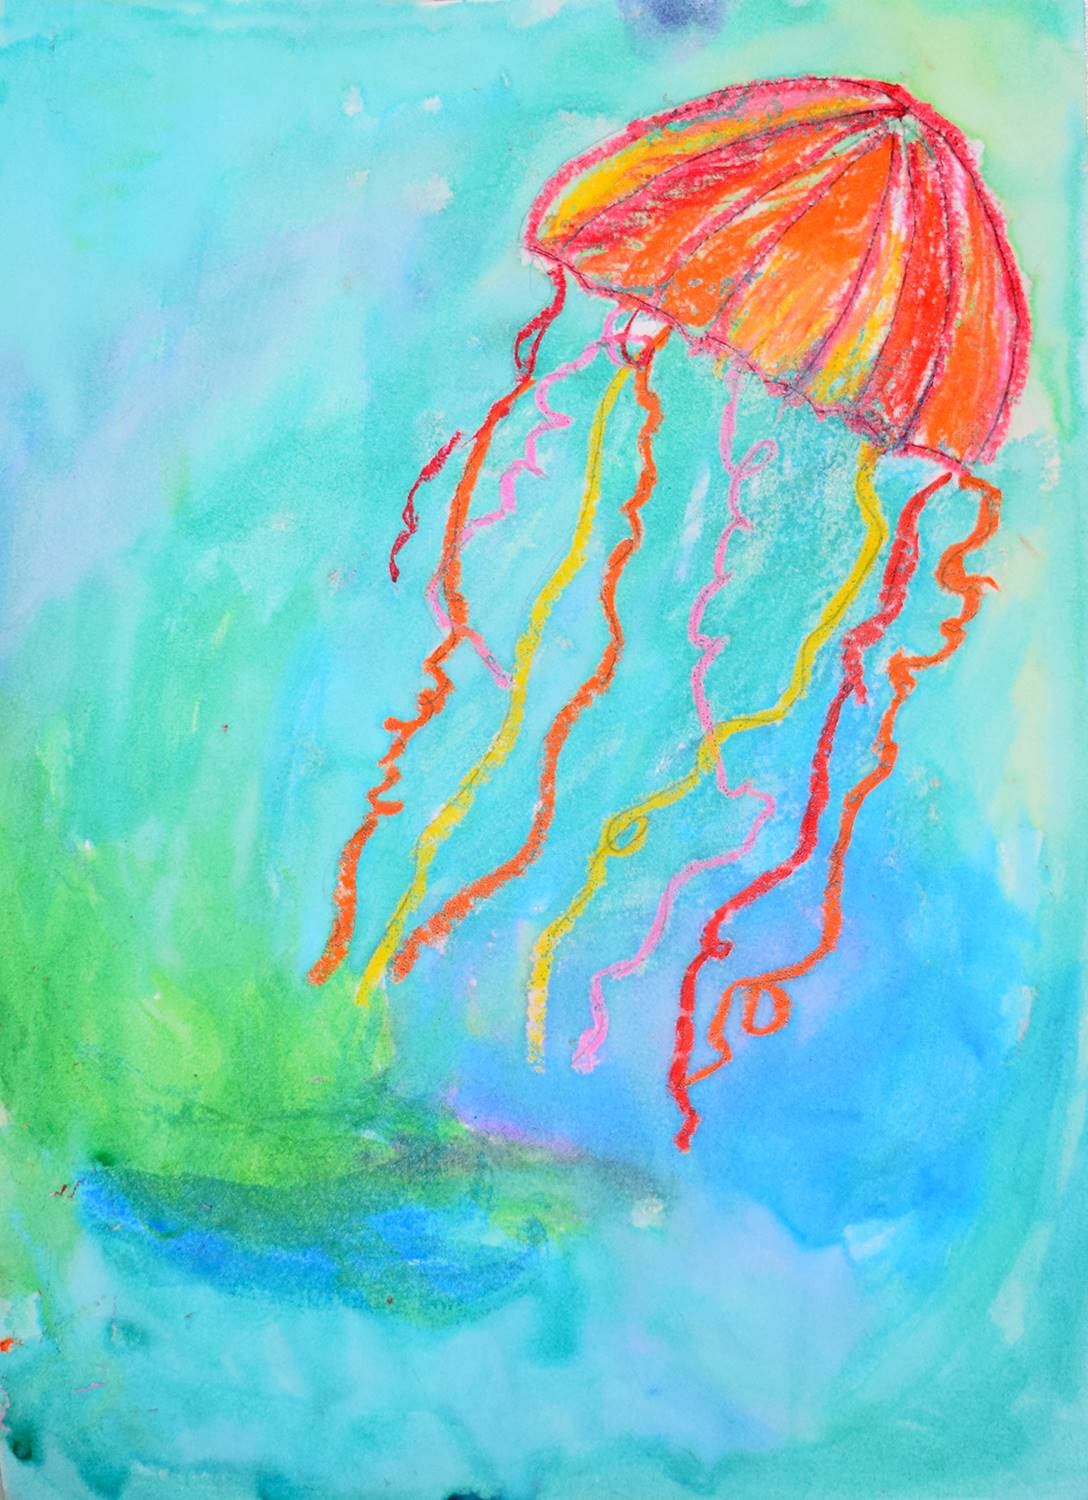 An orange, red and yellow jellyfish floating against a blue, green and purple background.